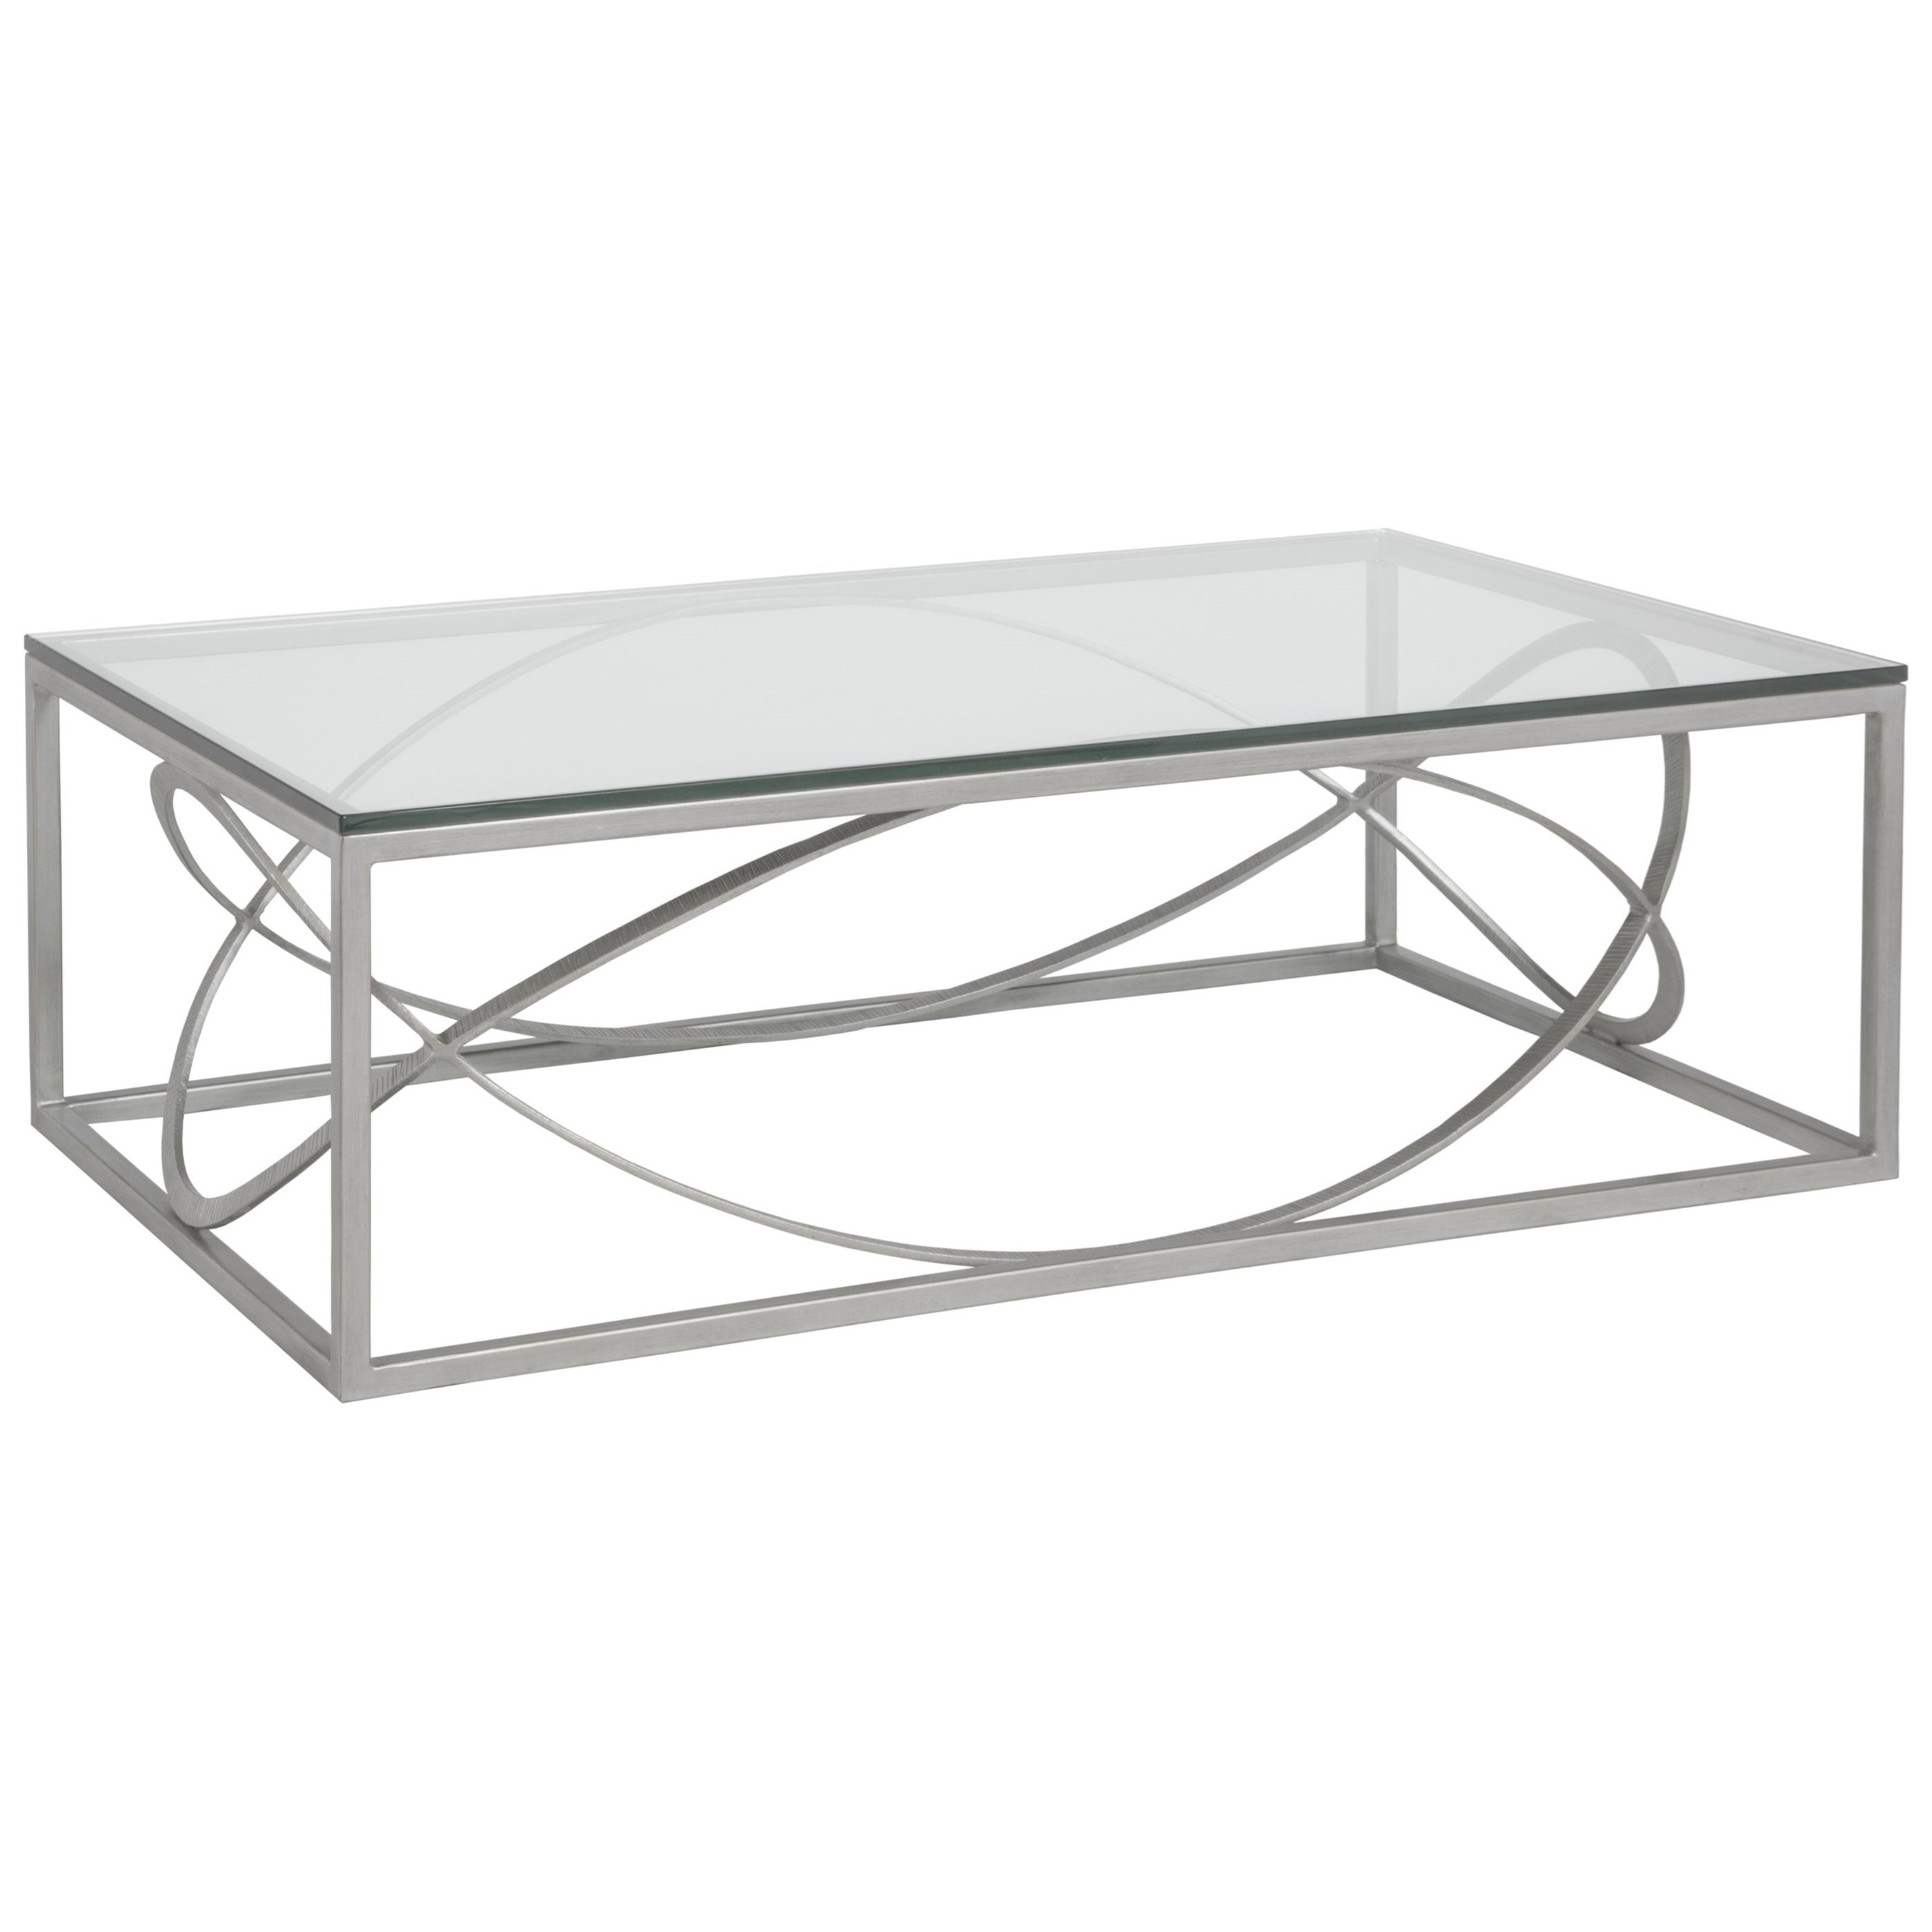 Metal Designs Ellipse Rectangular Cocktail Table by Artistica at Baer's Furniture